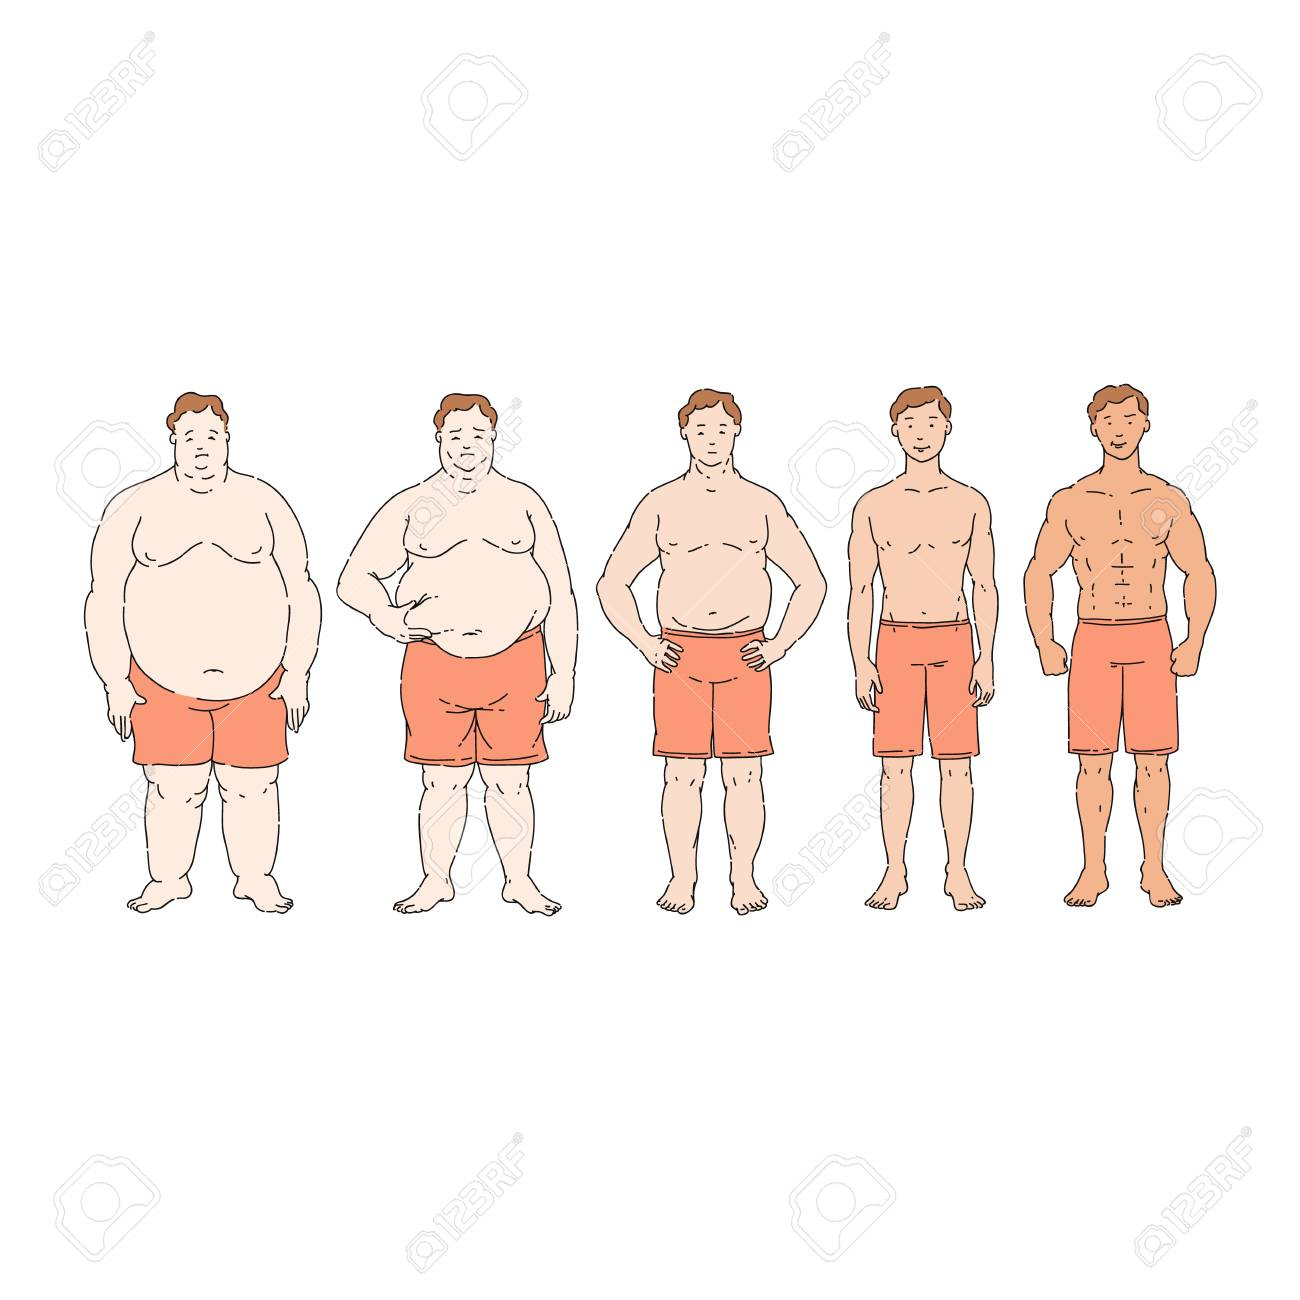 Fat Loss Diet Progress From Overweight To Thin Obese Person Royalty Free Cliparts Vectors And Stock Illustration Image 123466095